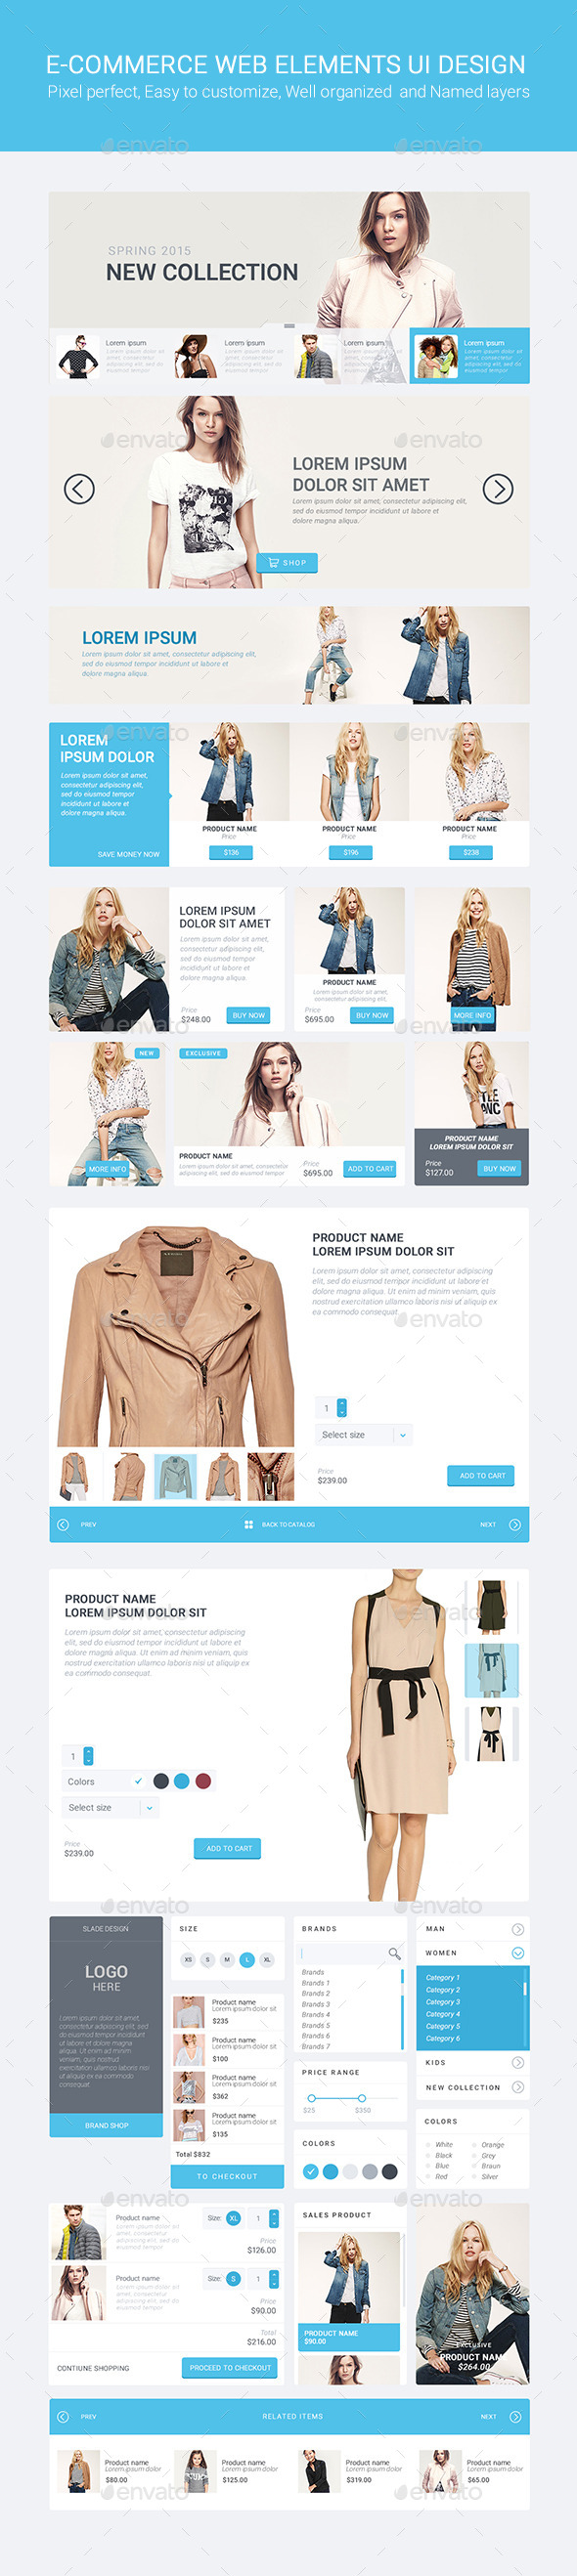 Slade E-commerce Web Elements UI Design (User Interfaces)